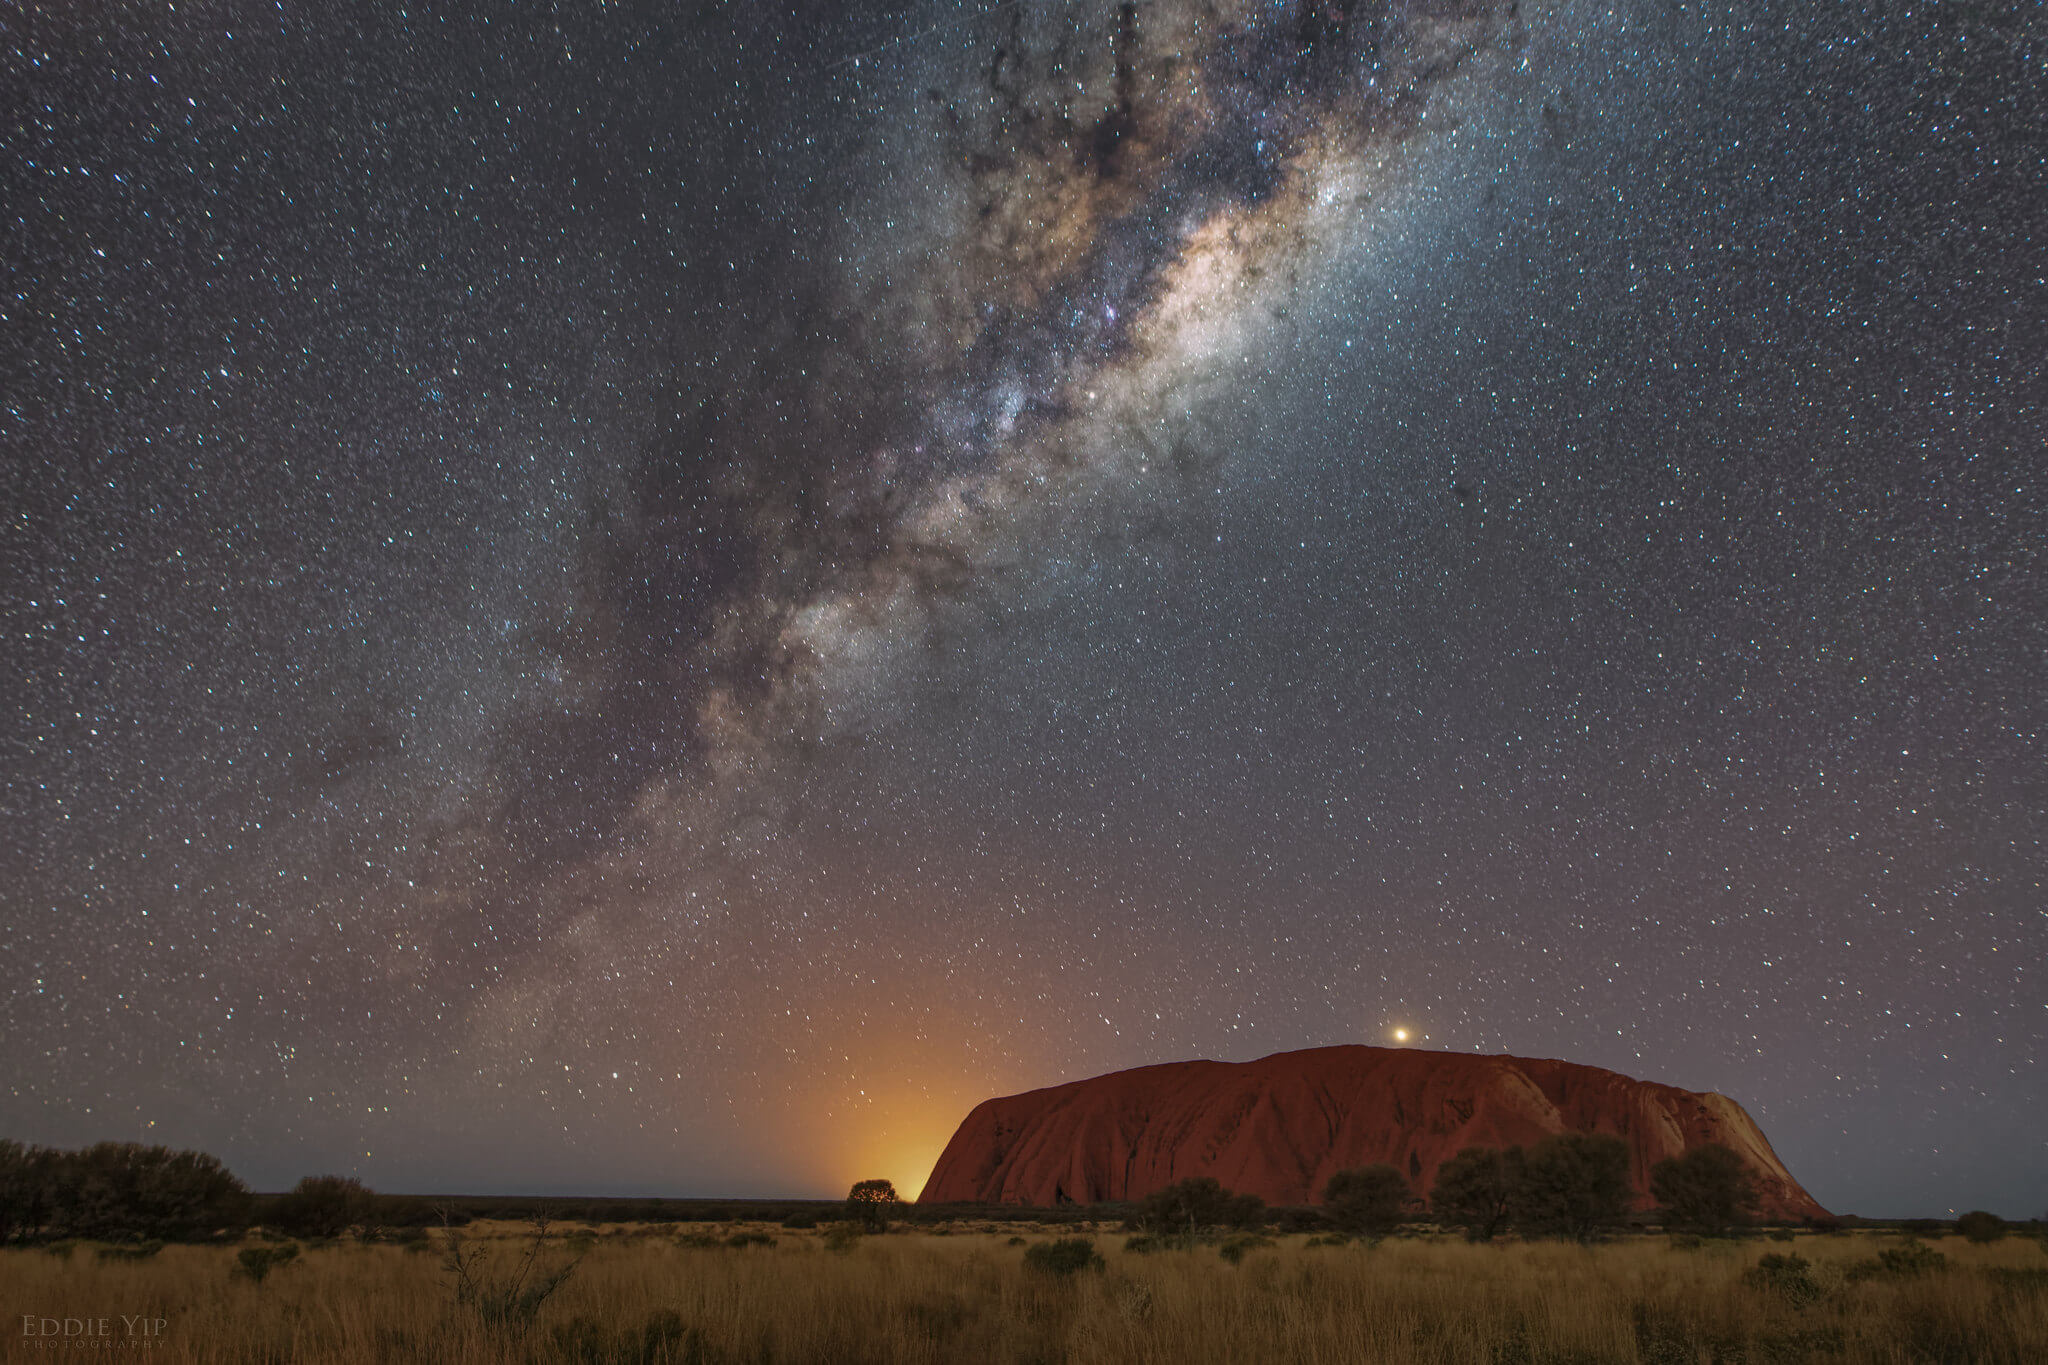 Uluru (Ayers Rock) under a starry sky - most famous national park in Australia